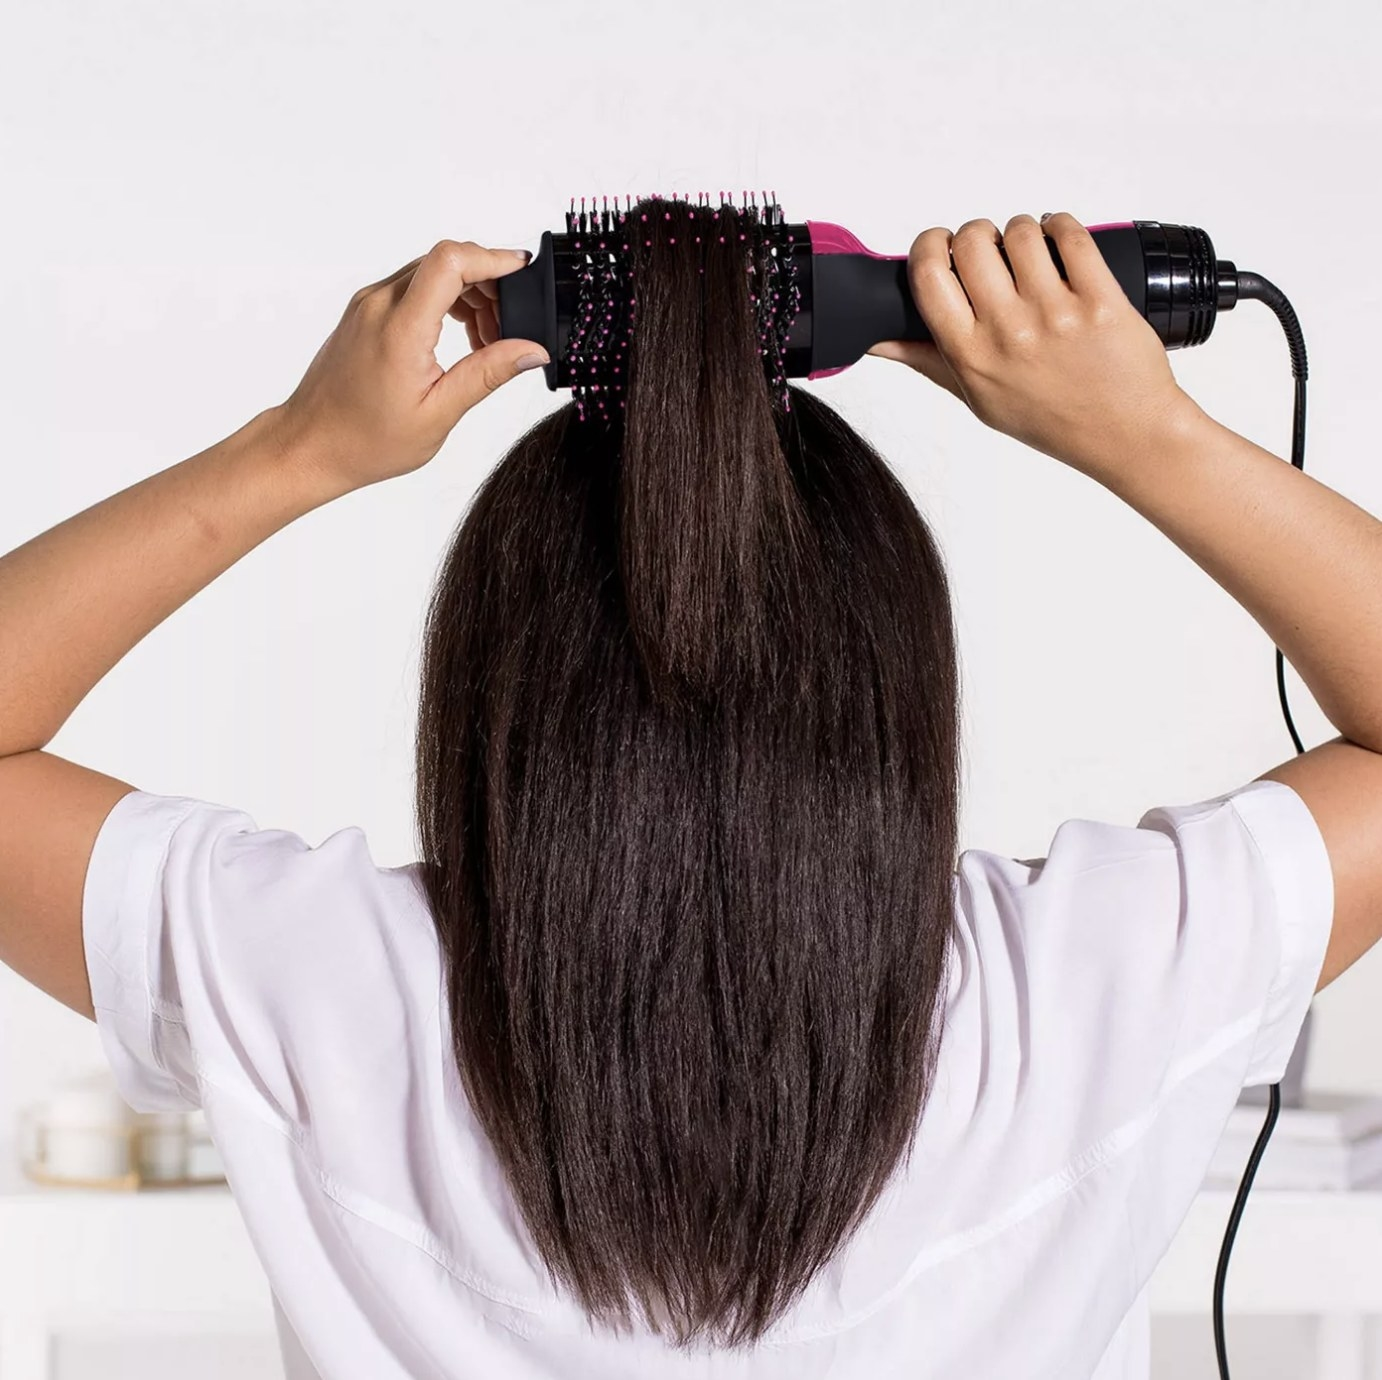 Model is blow-drying the back of her hair with the brush